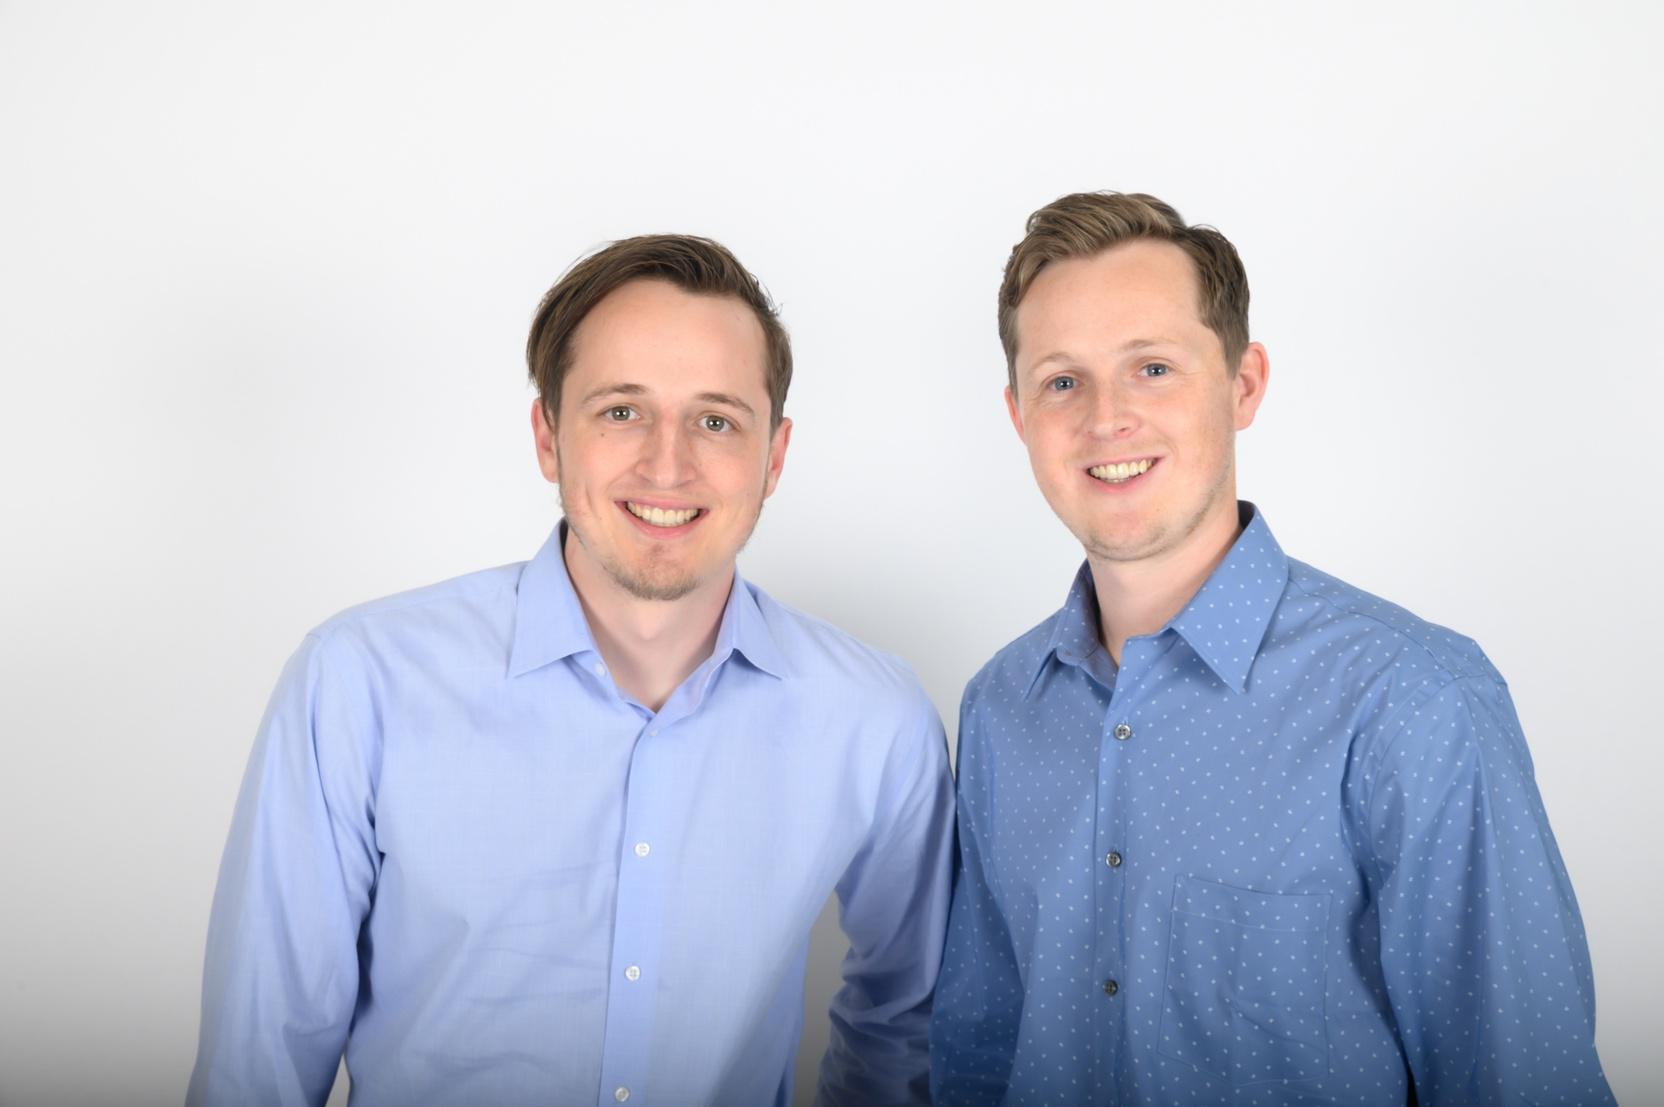 TaxBit cofounders Justin Woodward, left, and CEO Austin Woodward